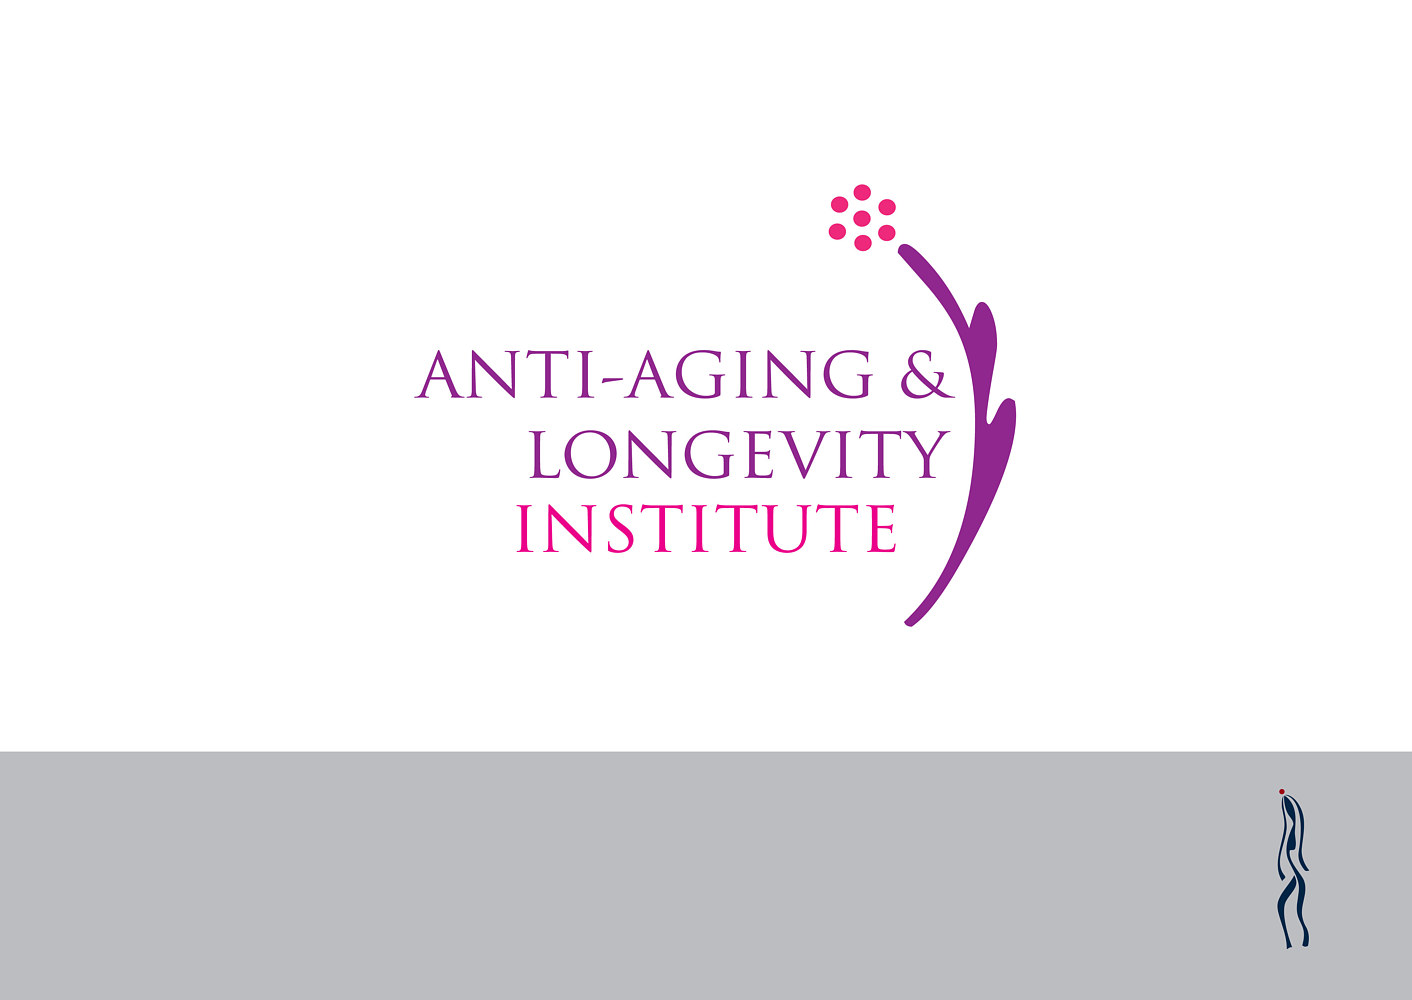 Anti-Aging and Longevity Institute | Health Care by Nathalie Gribinski